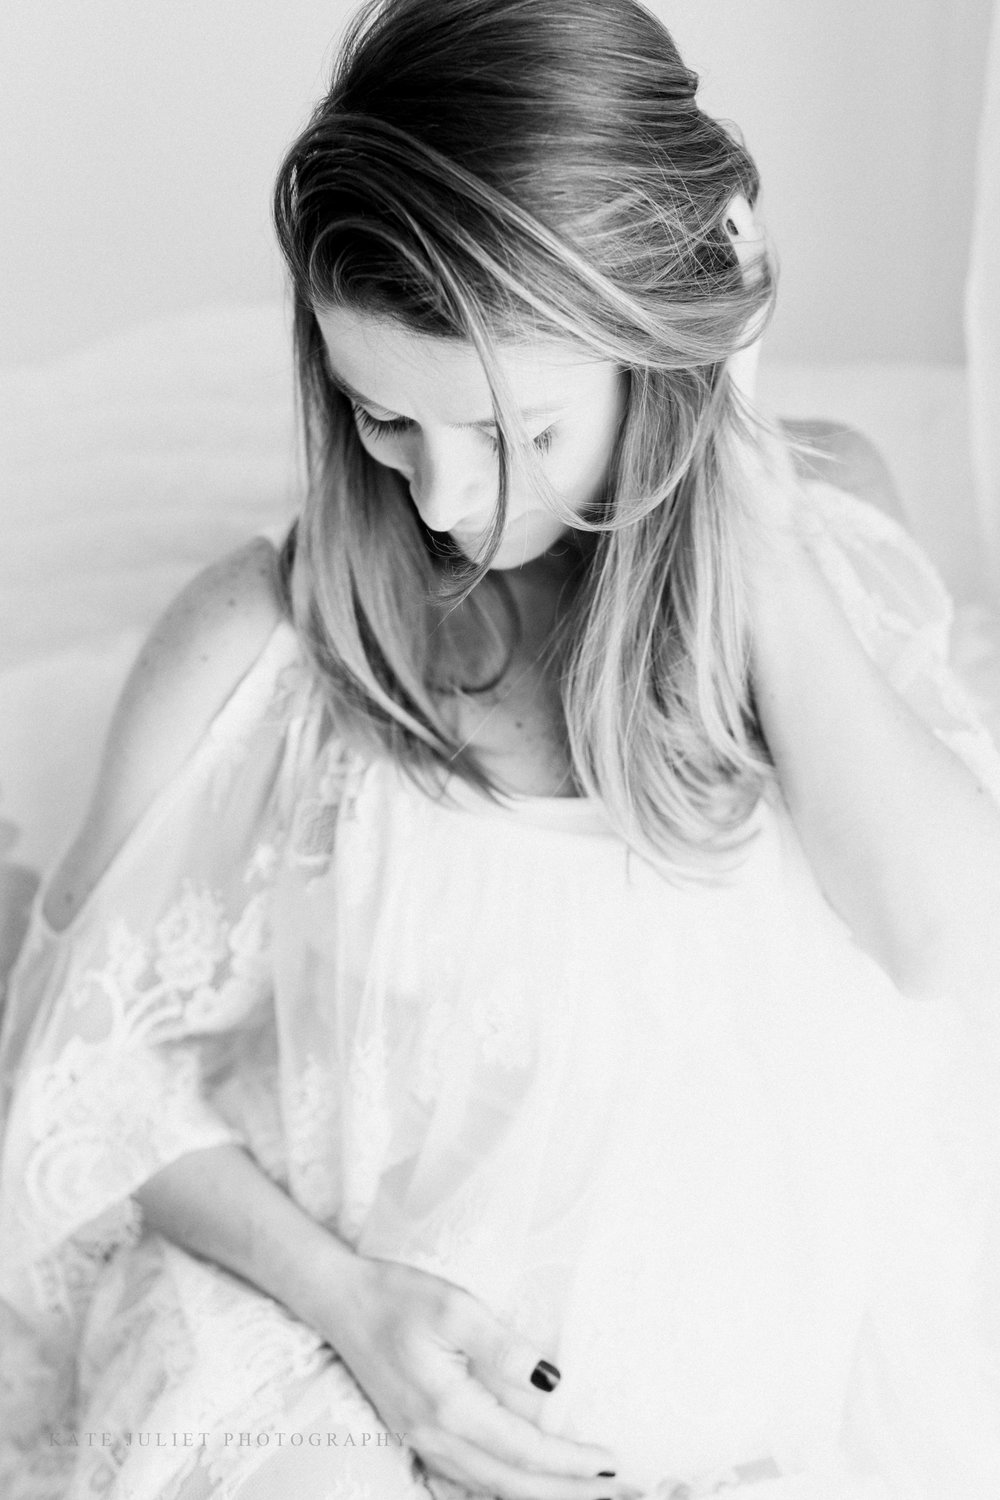 kate juliet photography - maternity - arlington va- web-30.jpg